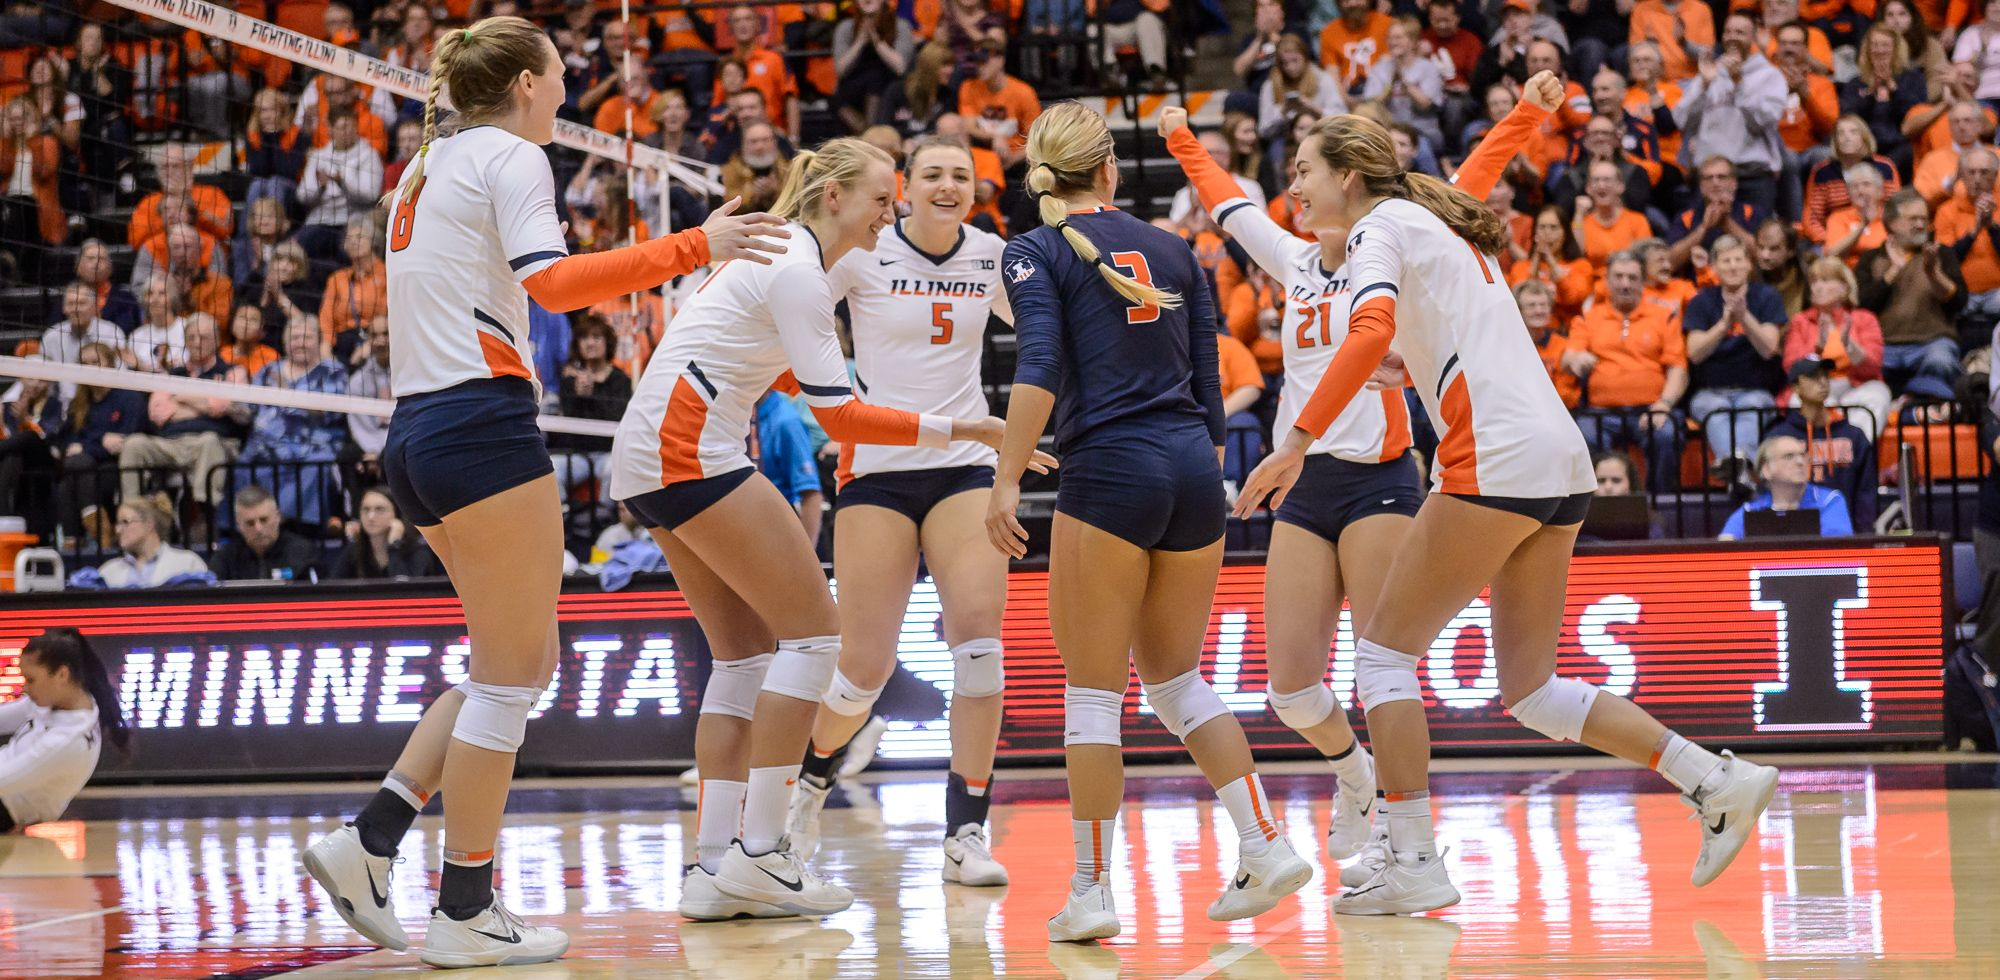 2018 Schedule Set For Illini Volleyball University Of Illinois Athletics Volleyball University Of Illinois Athletics Volleyball News